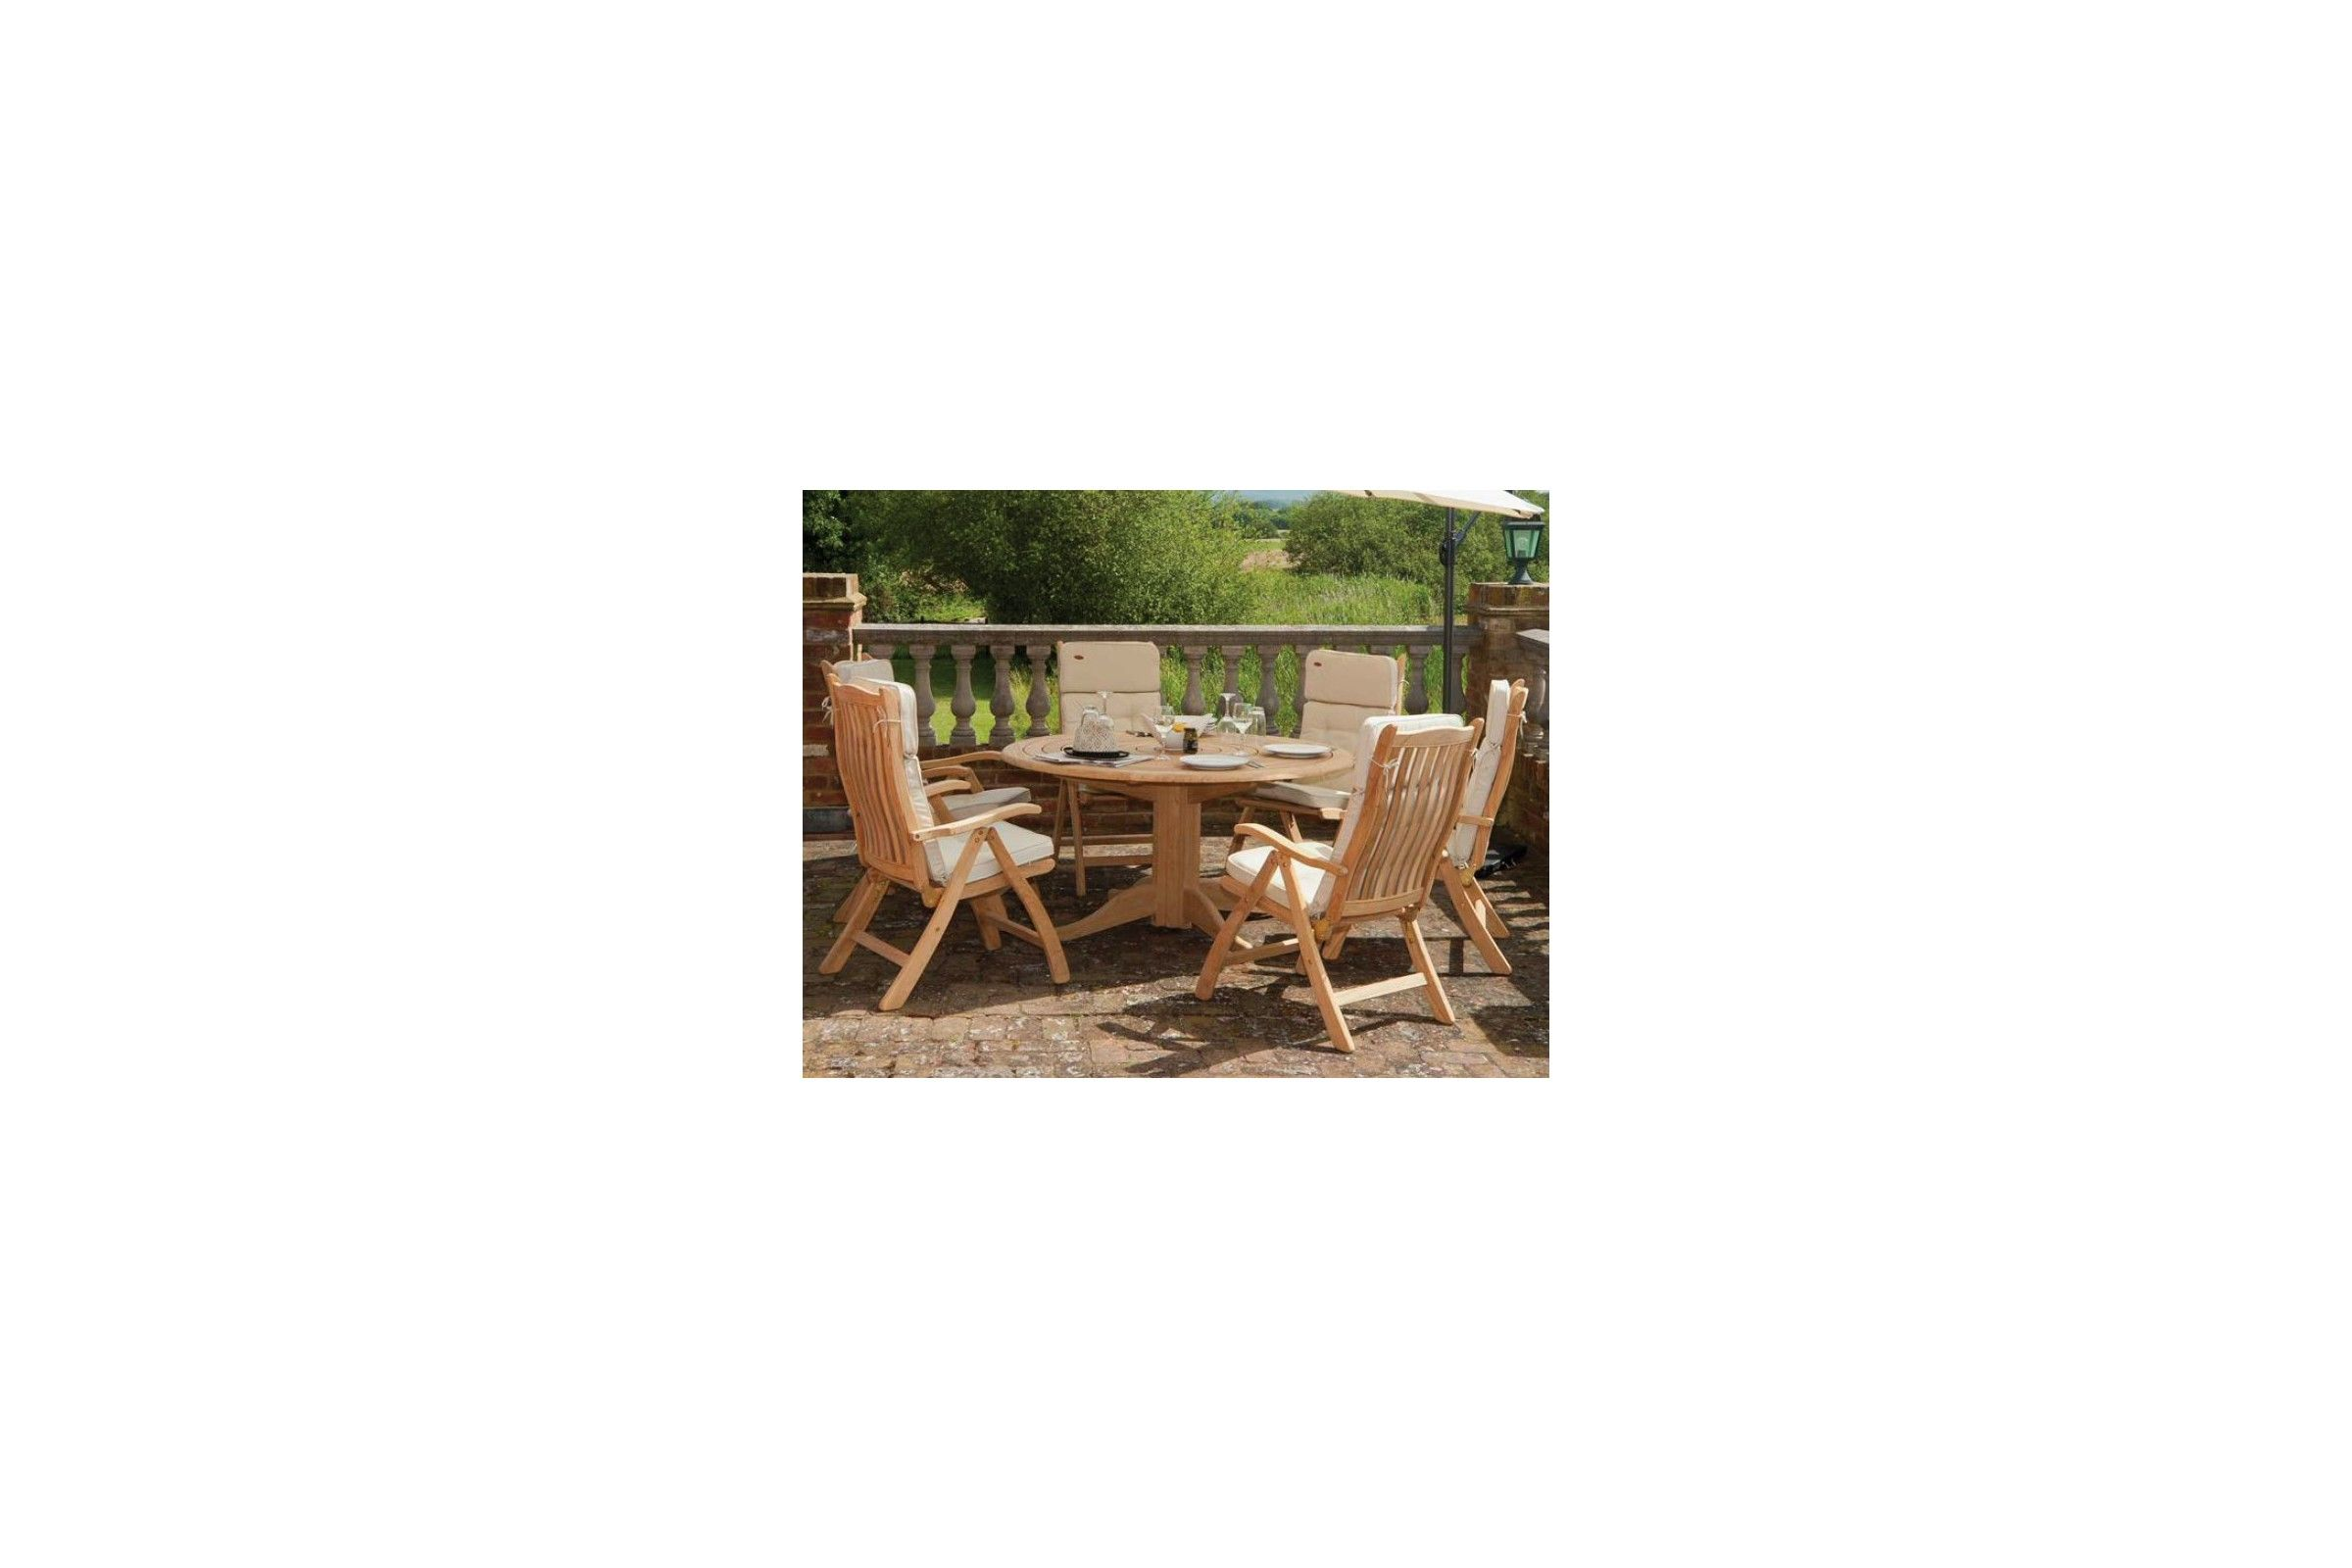 Table bois jardin leroy merlin - Table de jardin ronde robin naterial ...